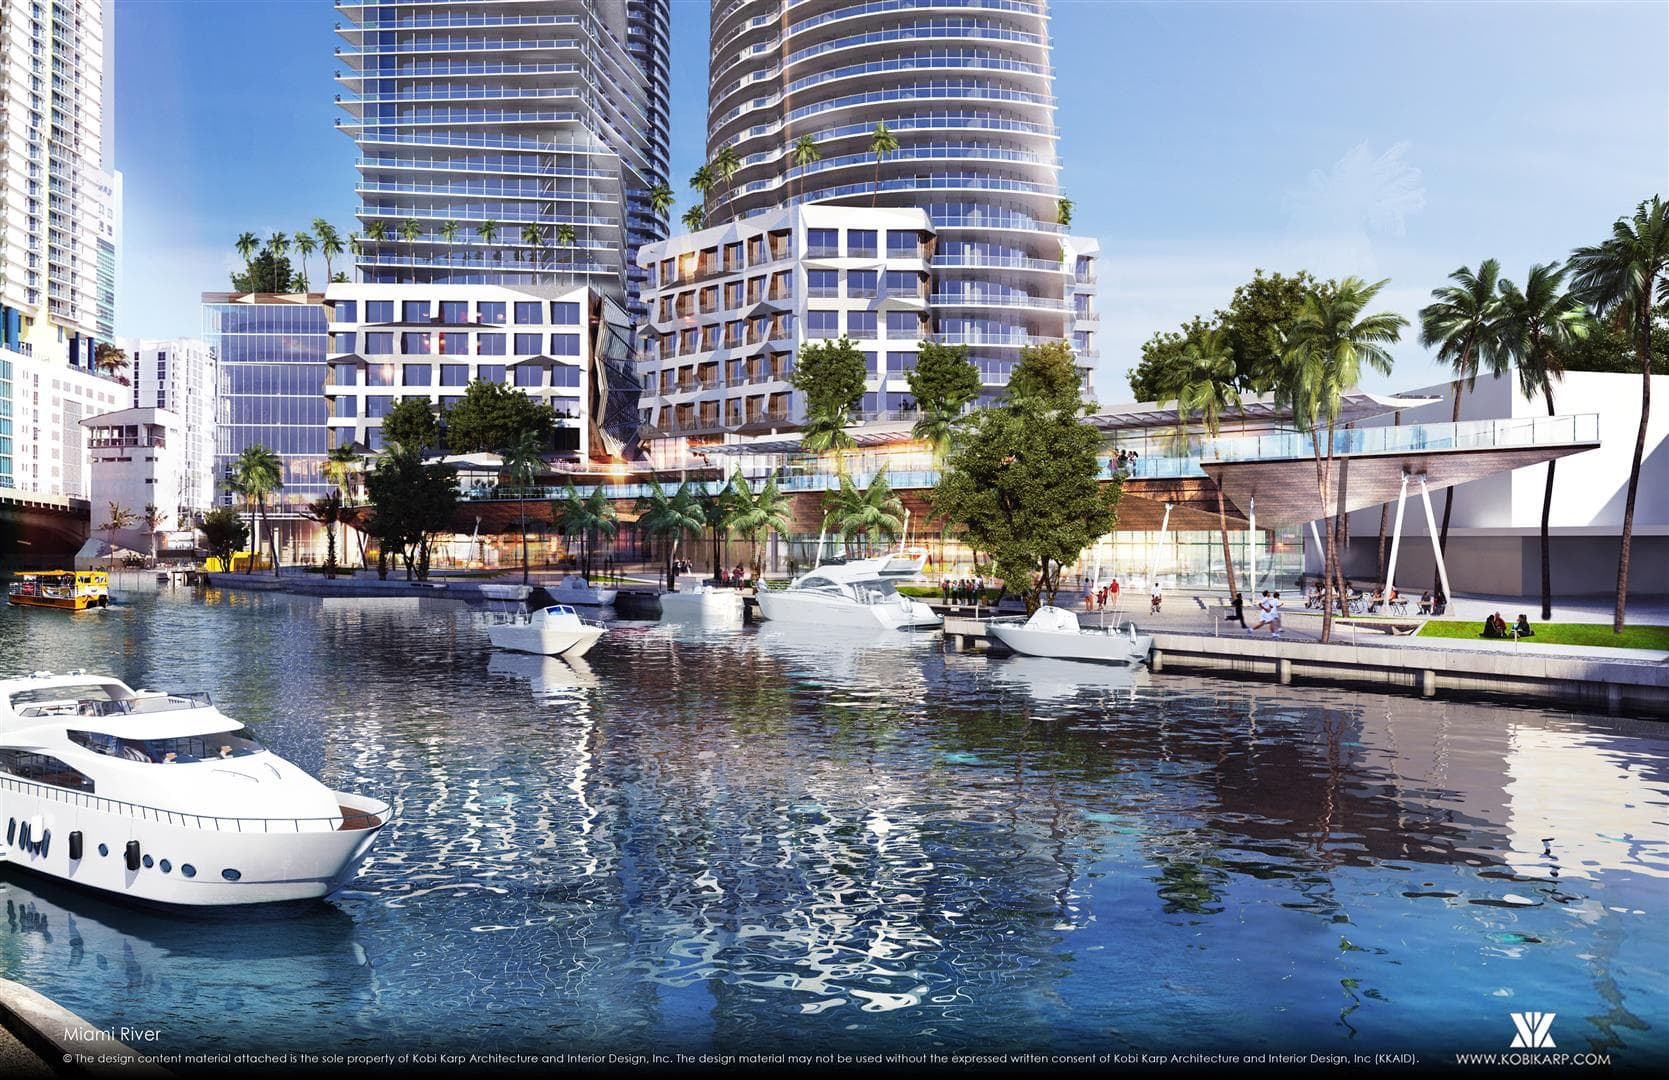 Chetrit Group's Miami Riverwalk.